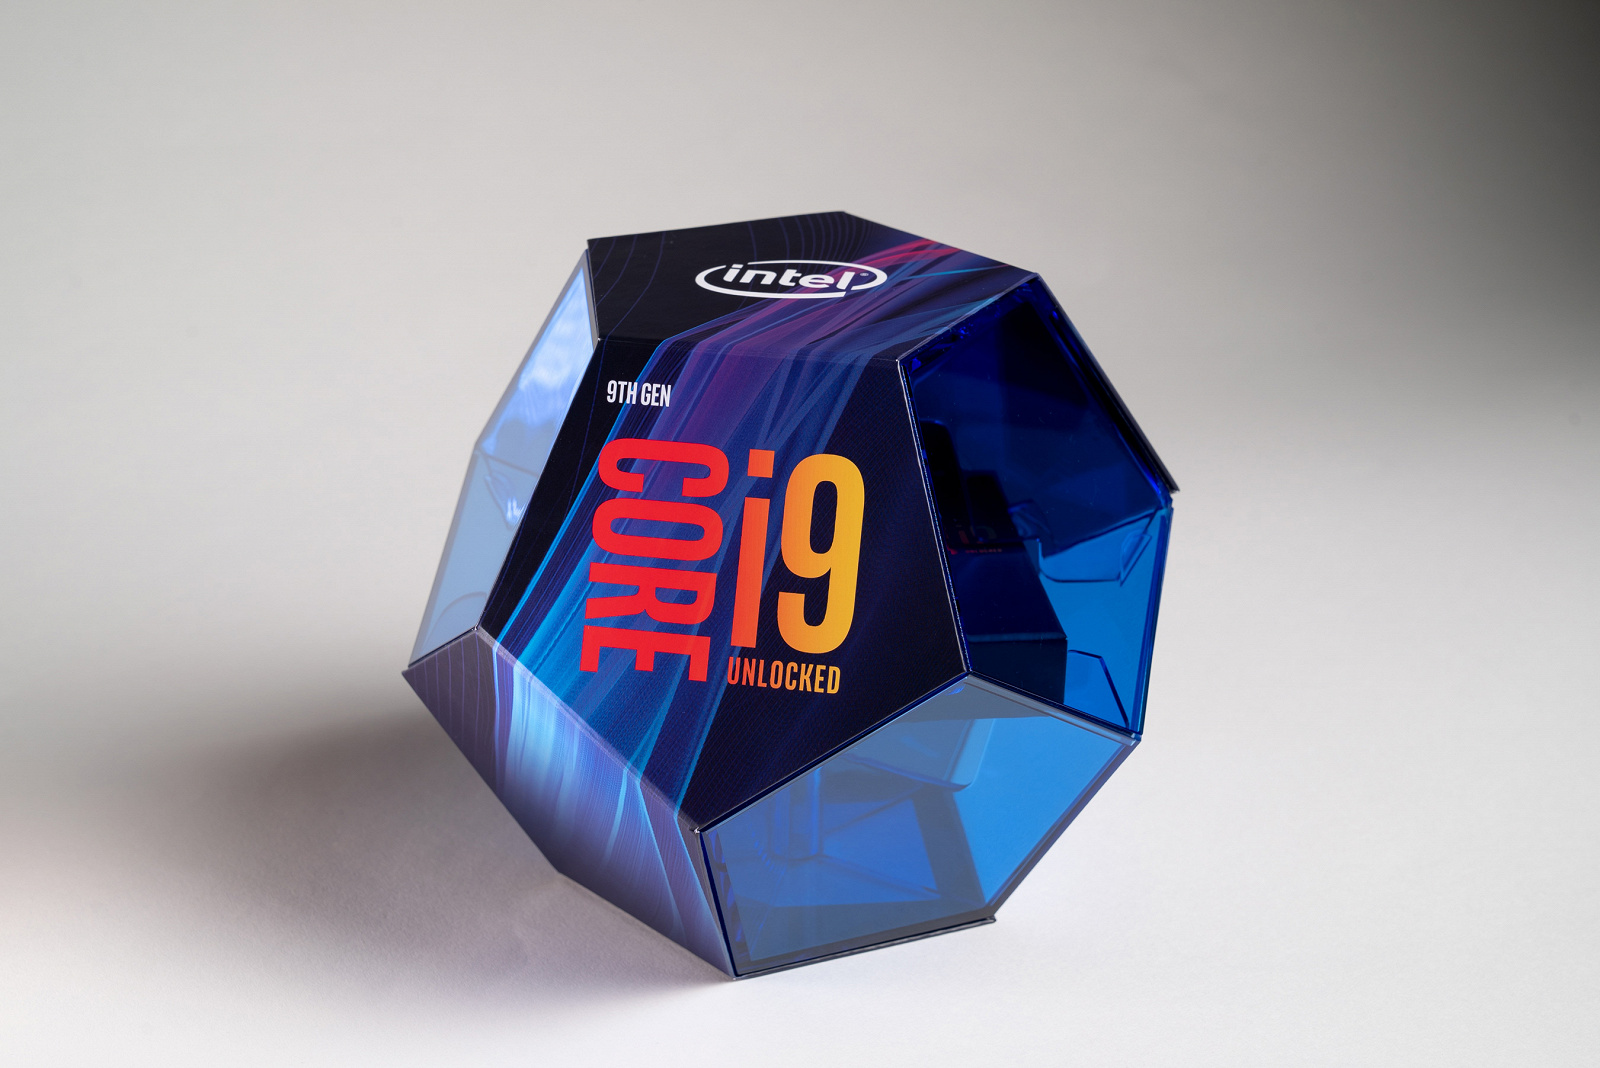 October 8 is the premiere date of the 9th generation of Intel processors